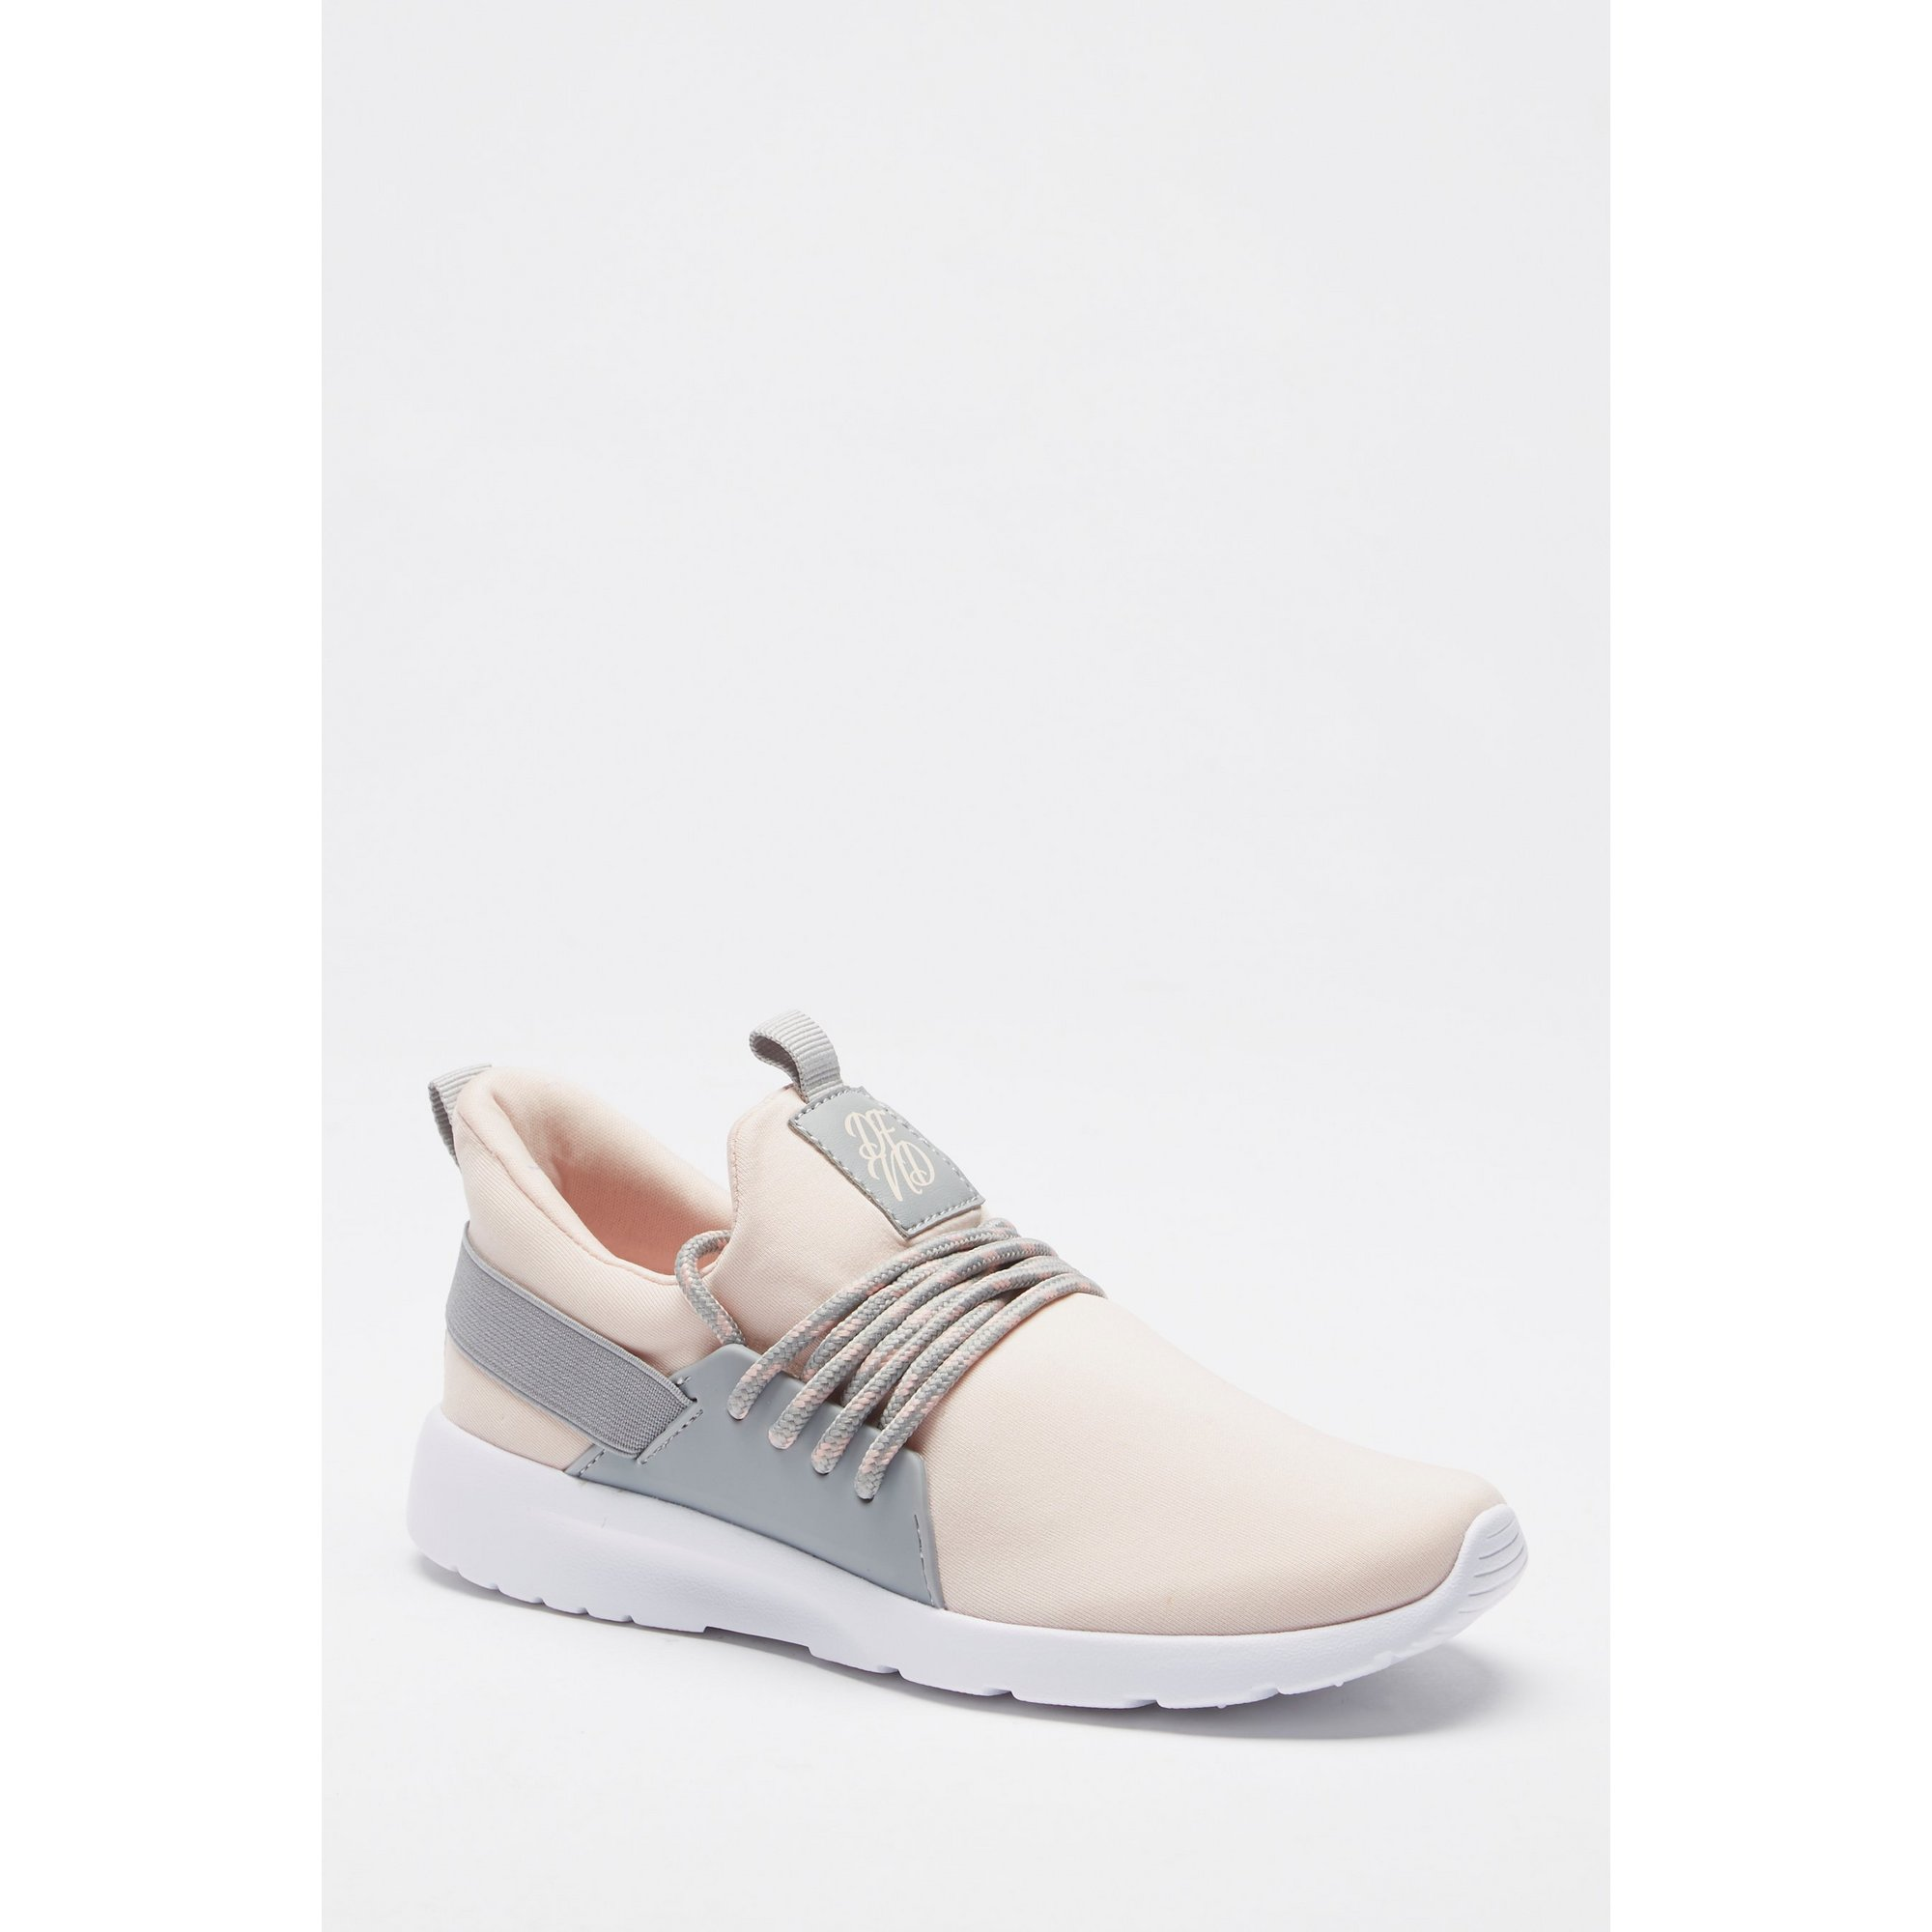 Image of DFND Slip-On Blush Trainers